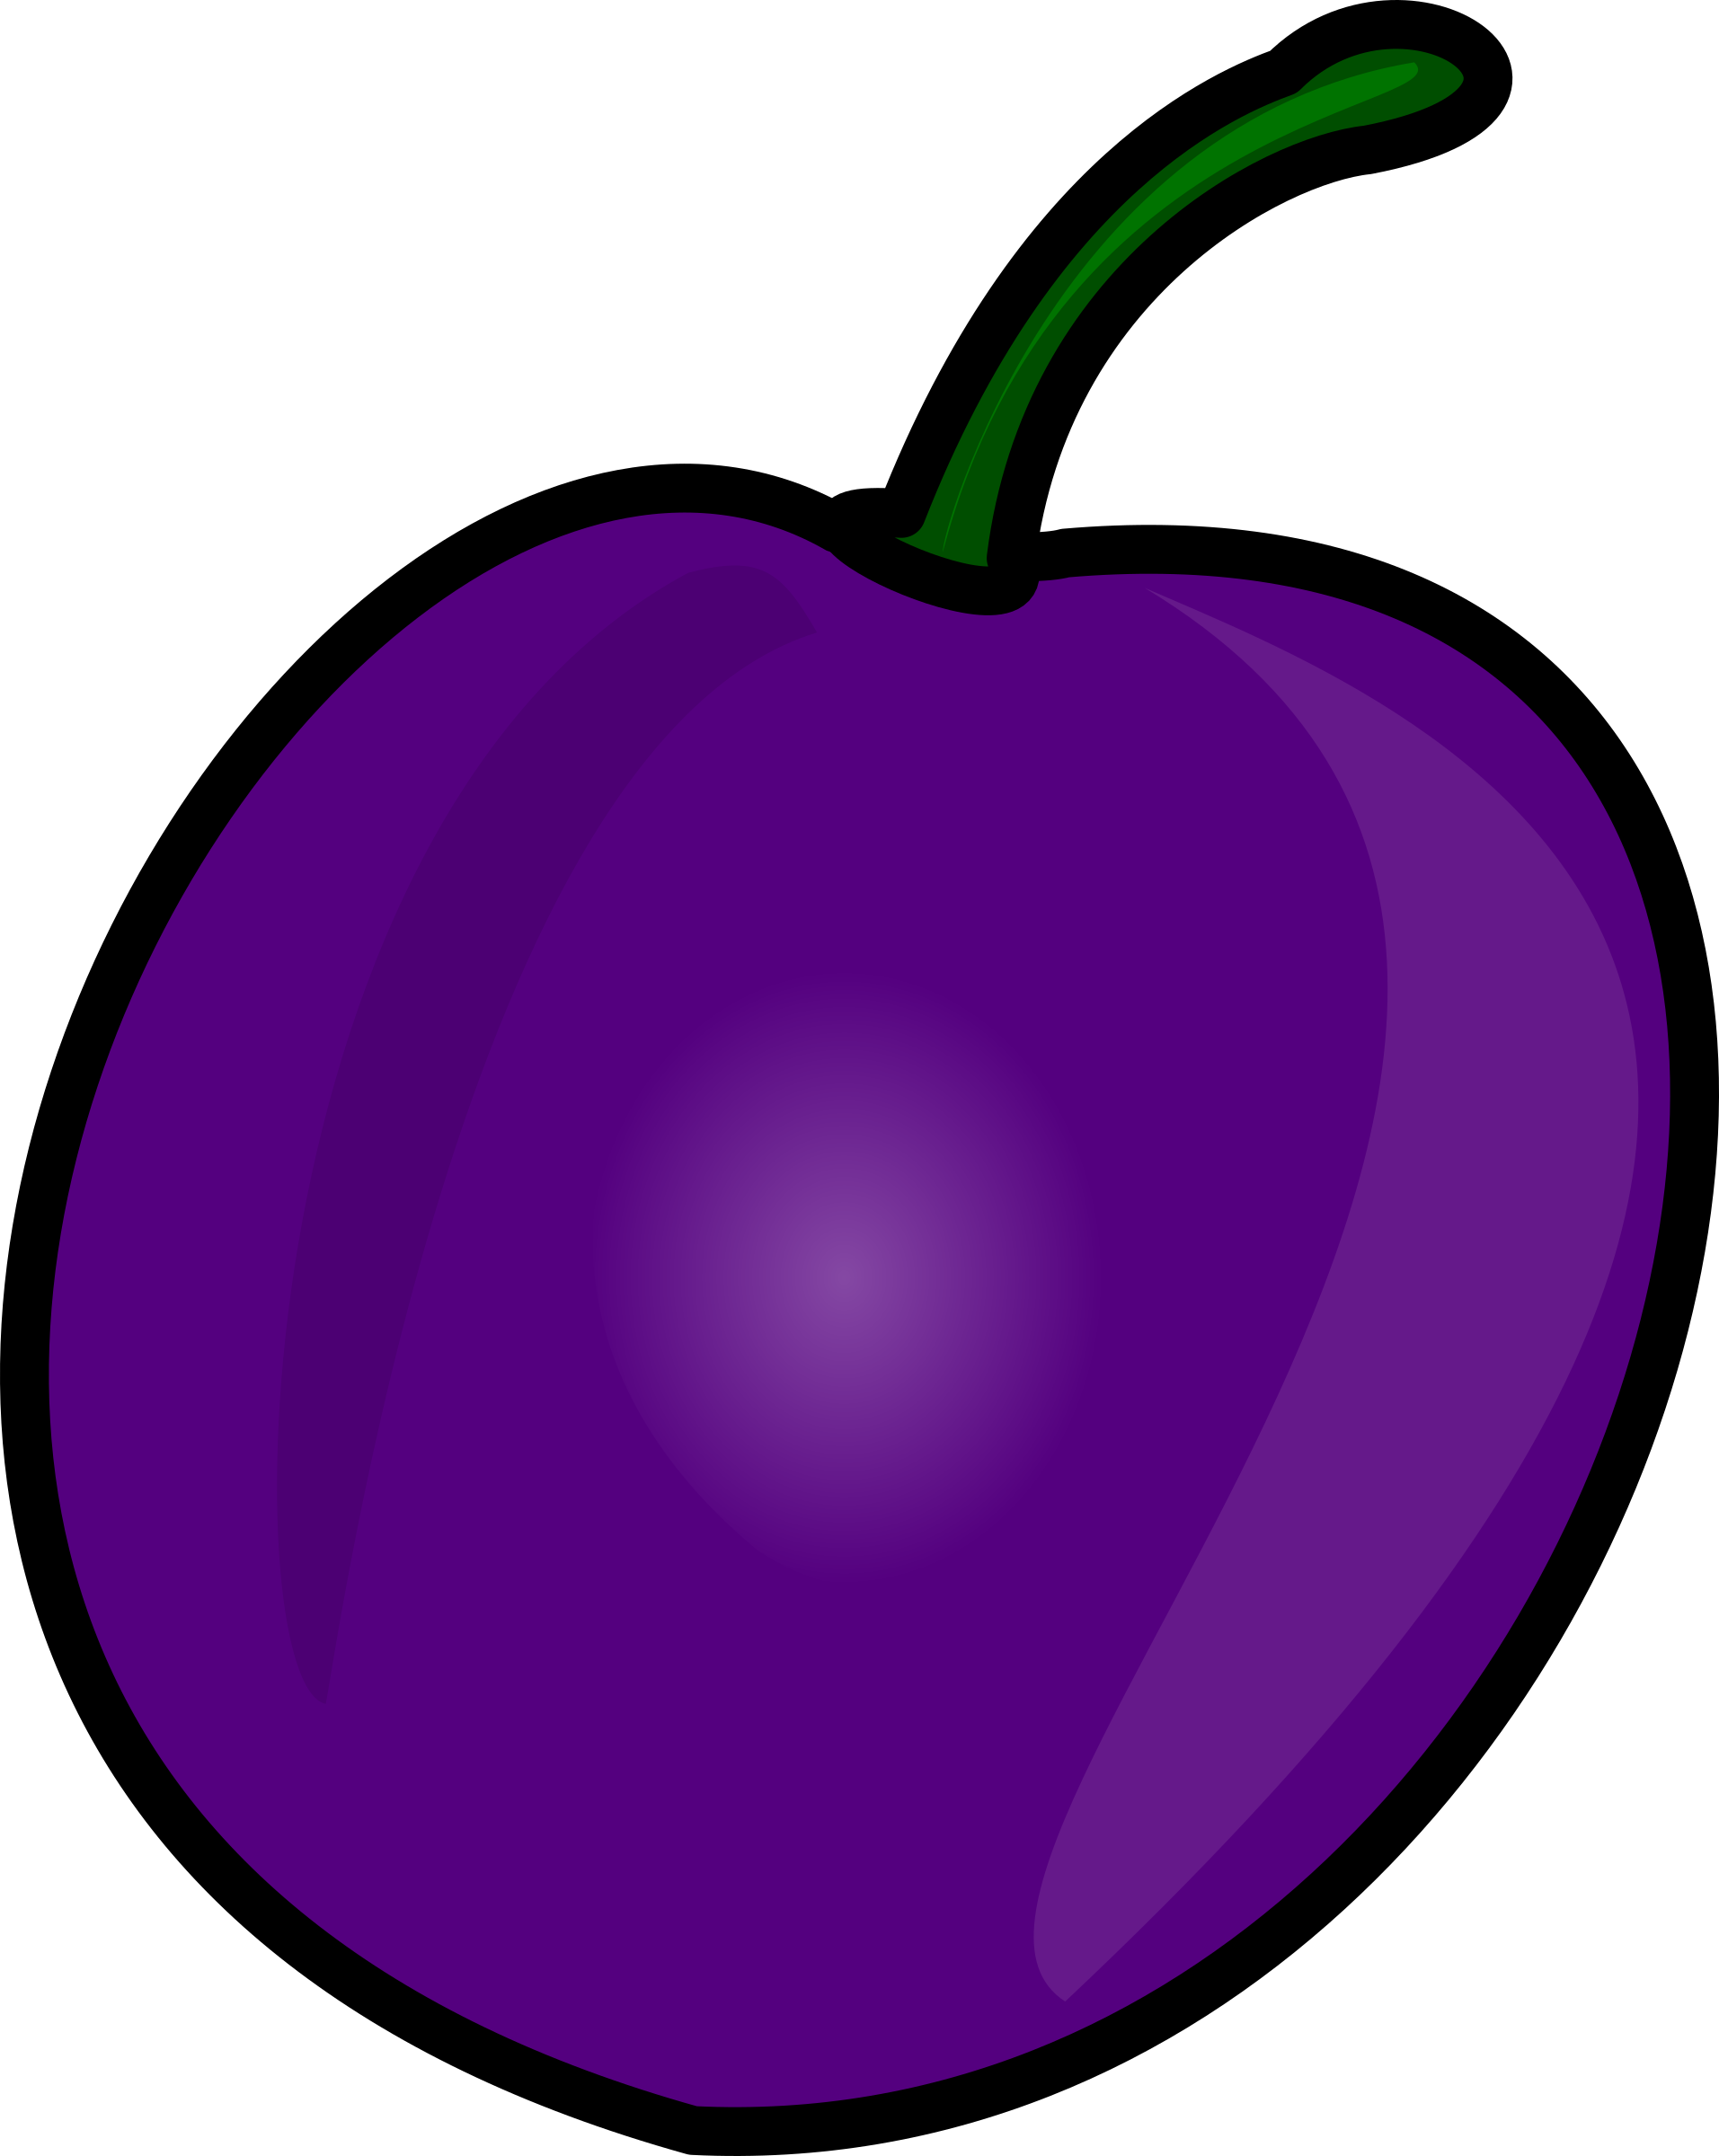 Peppers clipart single vegetable. Plum big image png